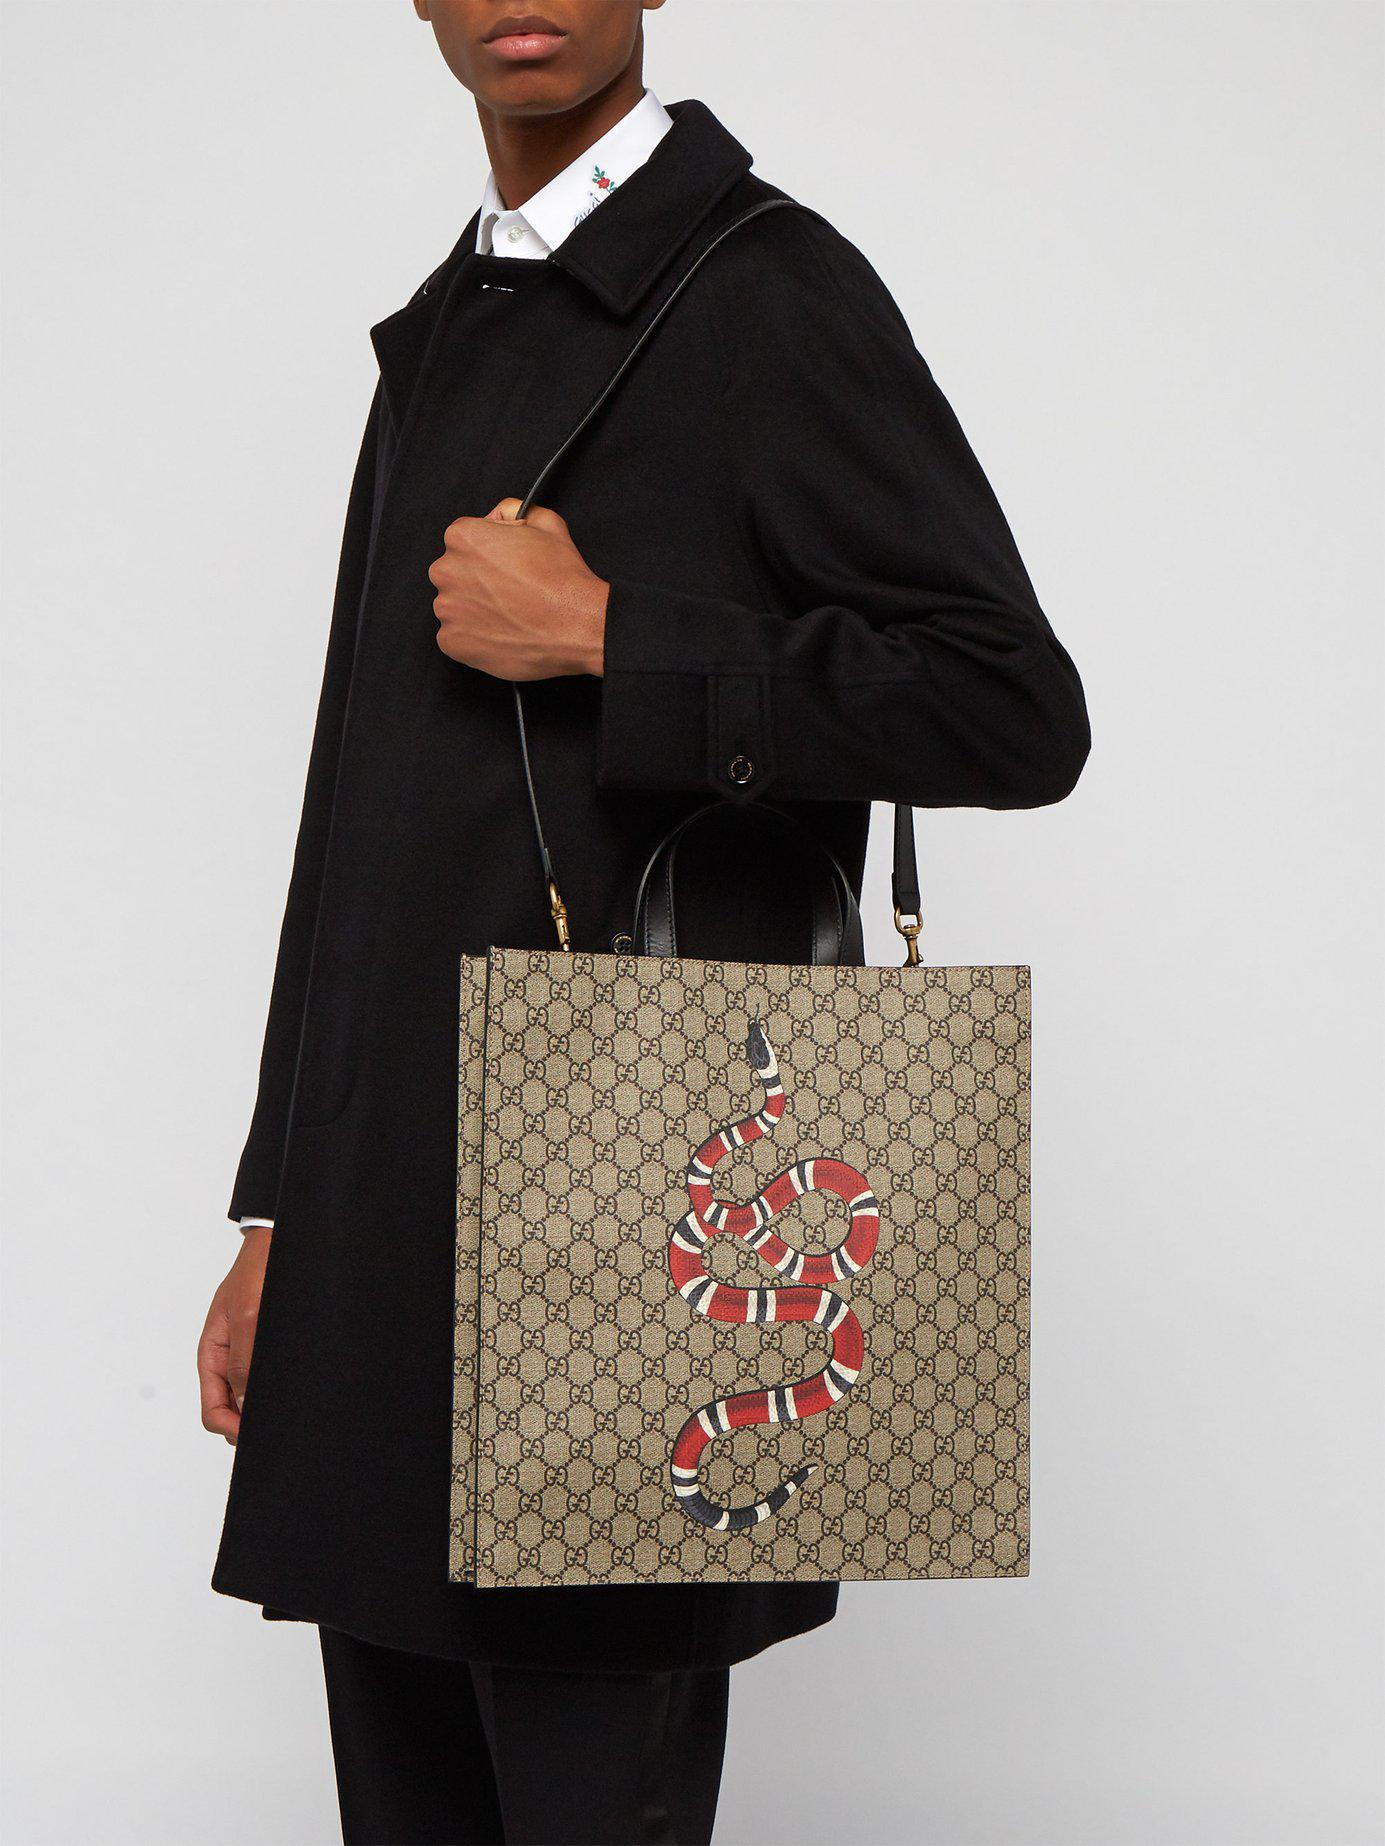 e90af420bb3 Gucci - Natural Gg Supreme And Kingsnake Print Tote Bag for Men - Lyst.  View fullscreen